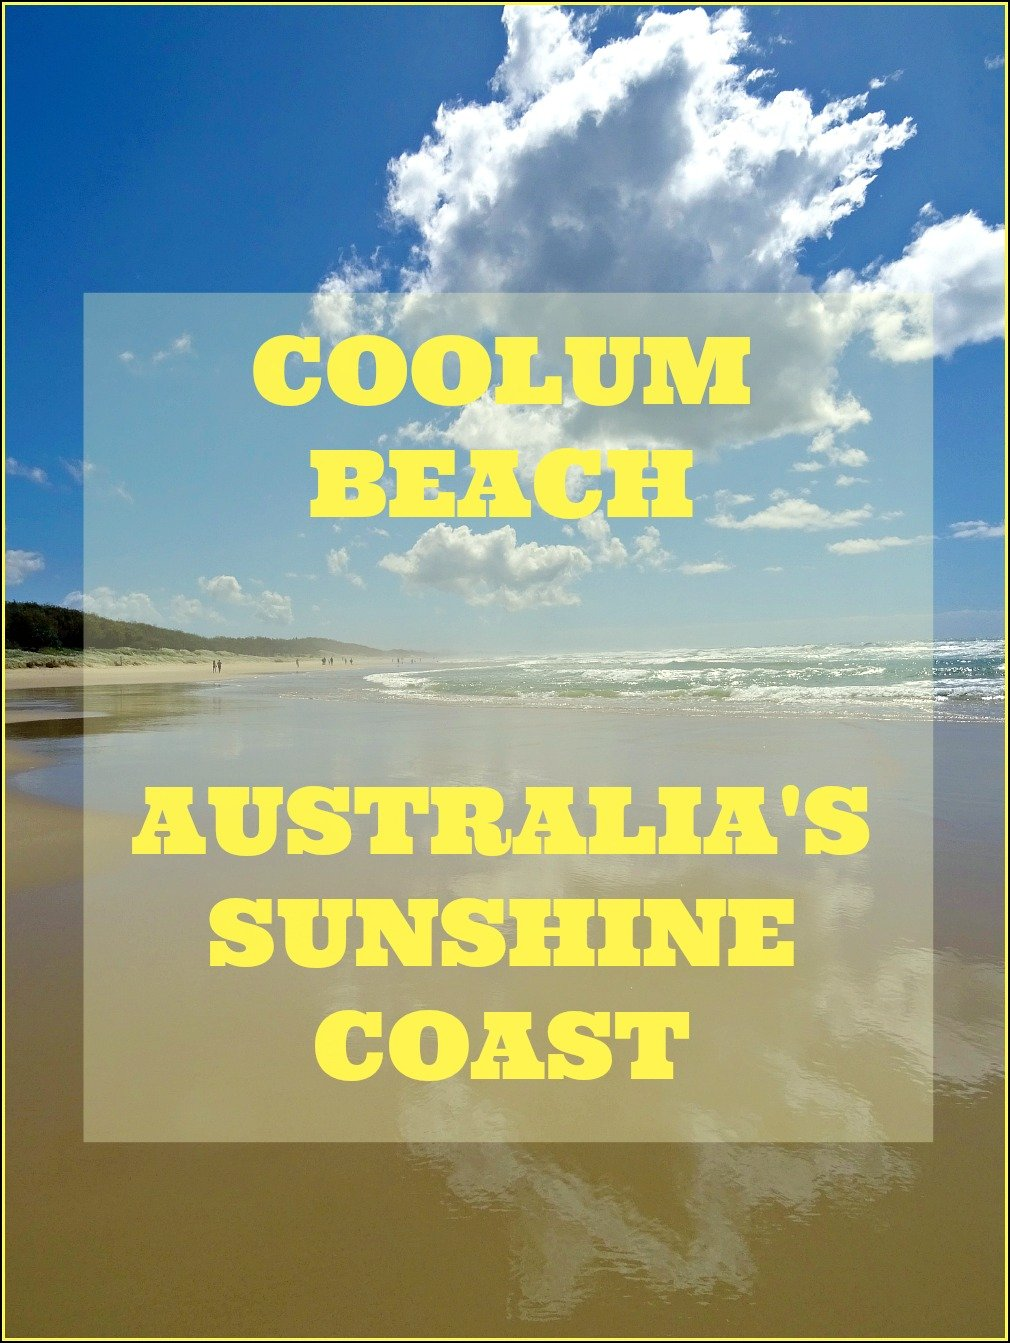 Coolum Beach on the Sunshine Coast of Queensland Australia